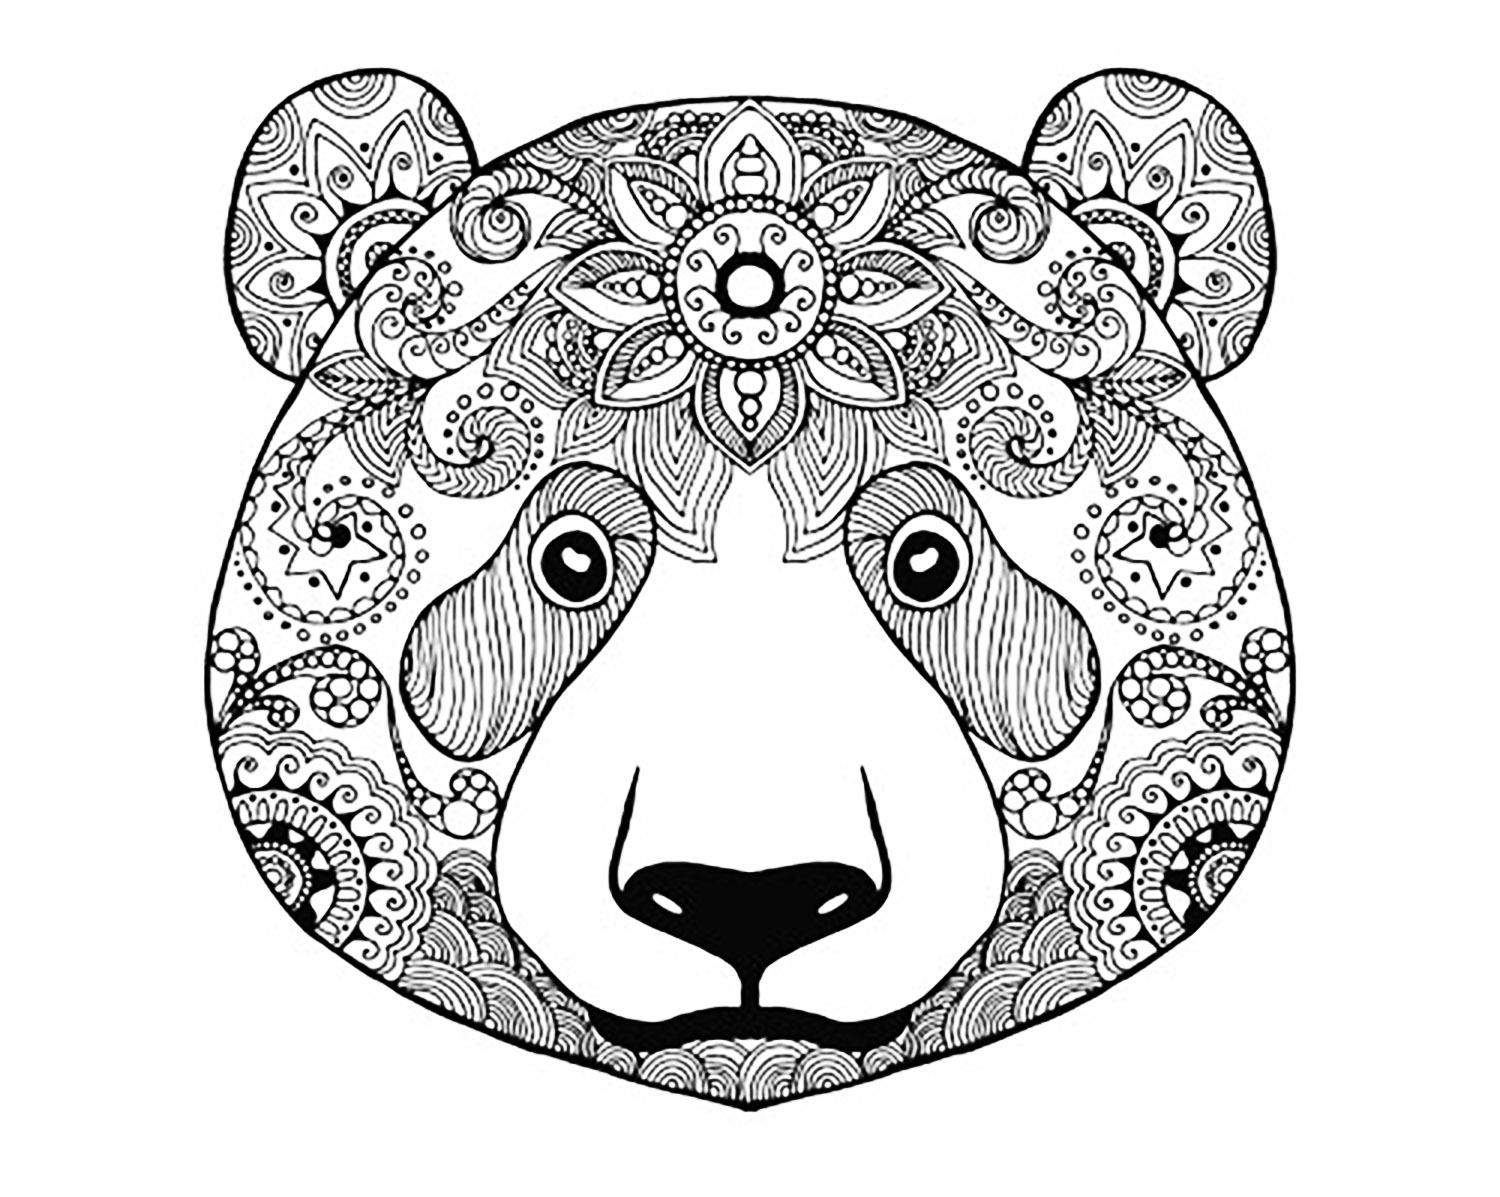 animal coloring sheets adult coloring pages animals best coloring pages for kids sheets coloring animal 1 1